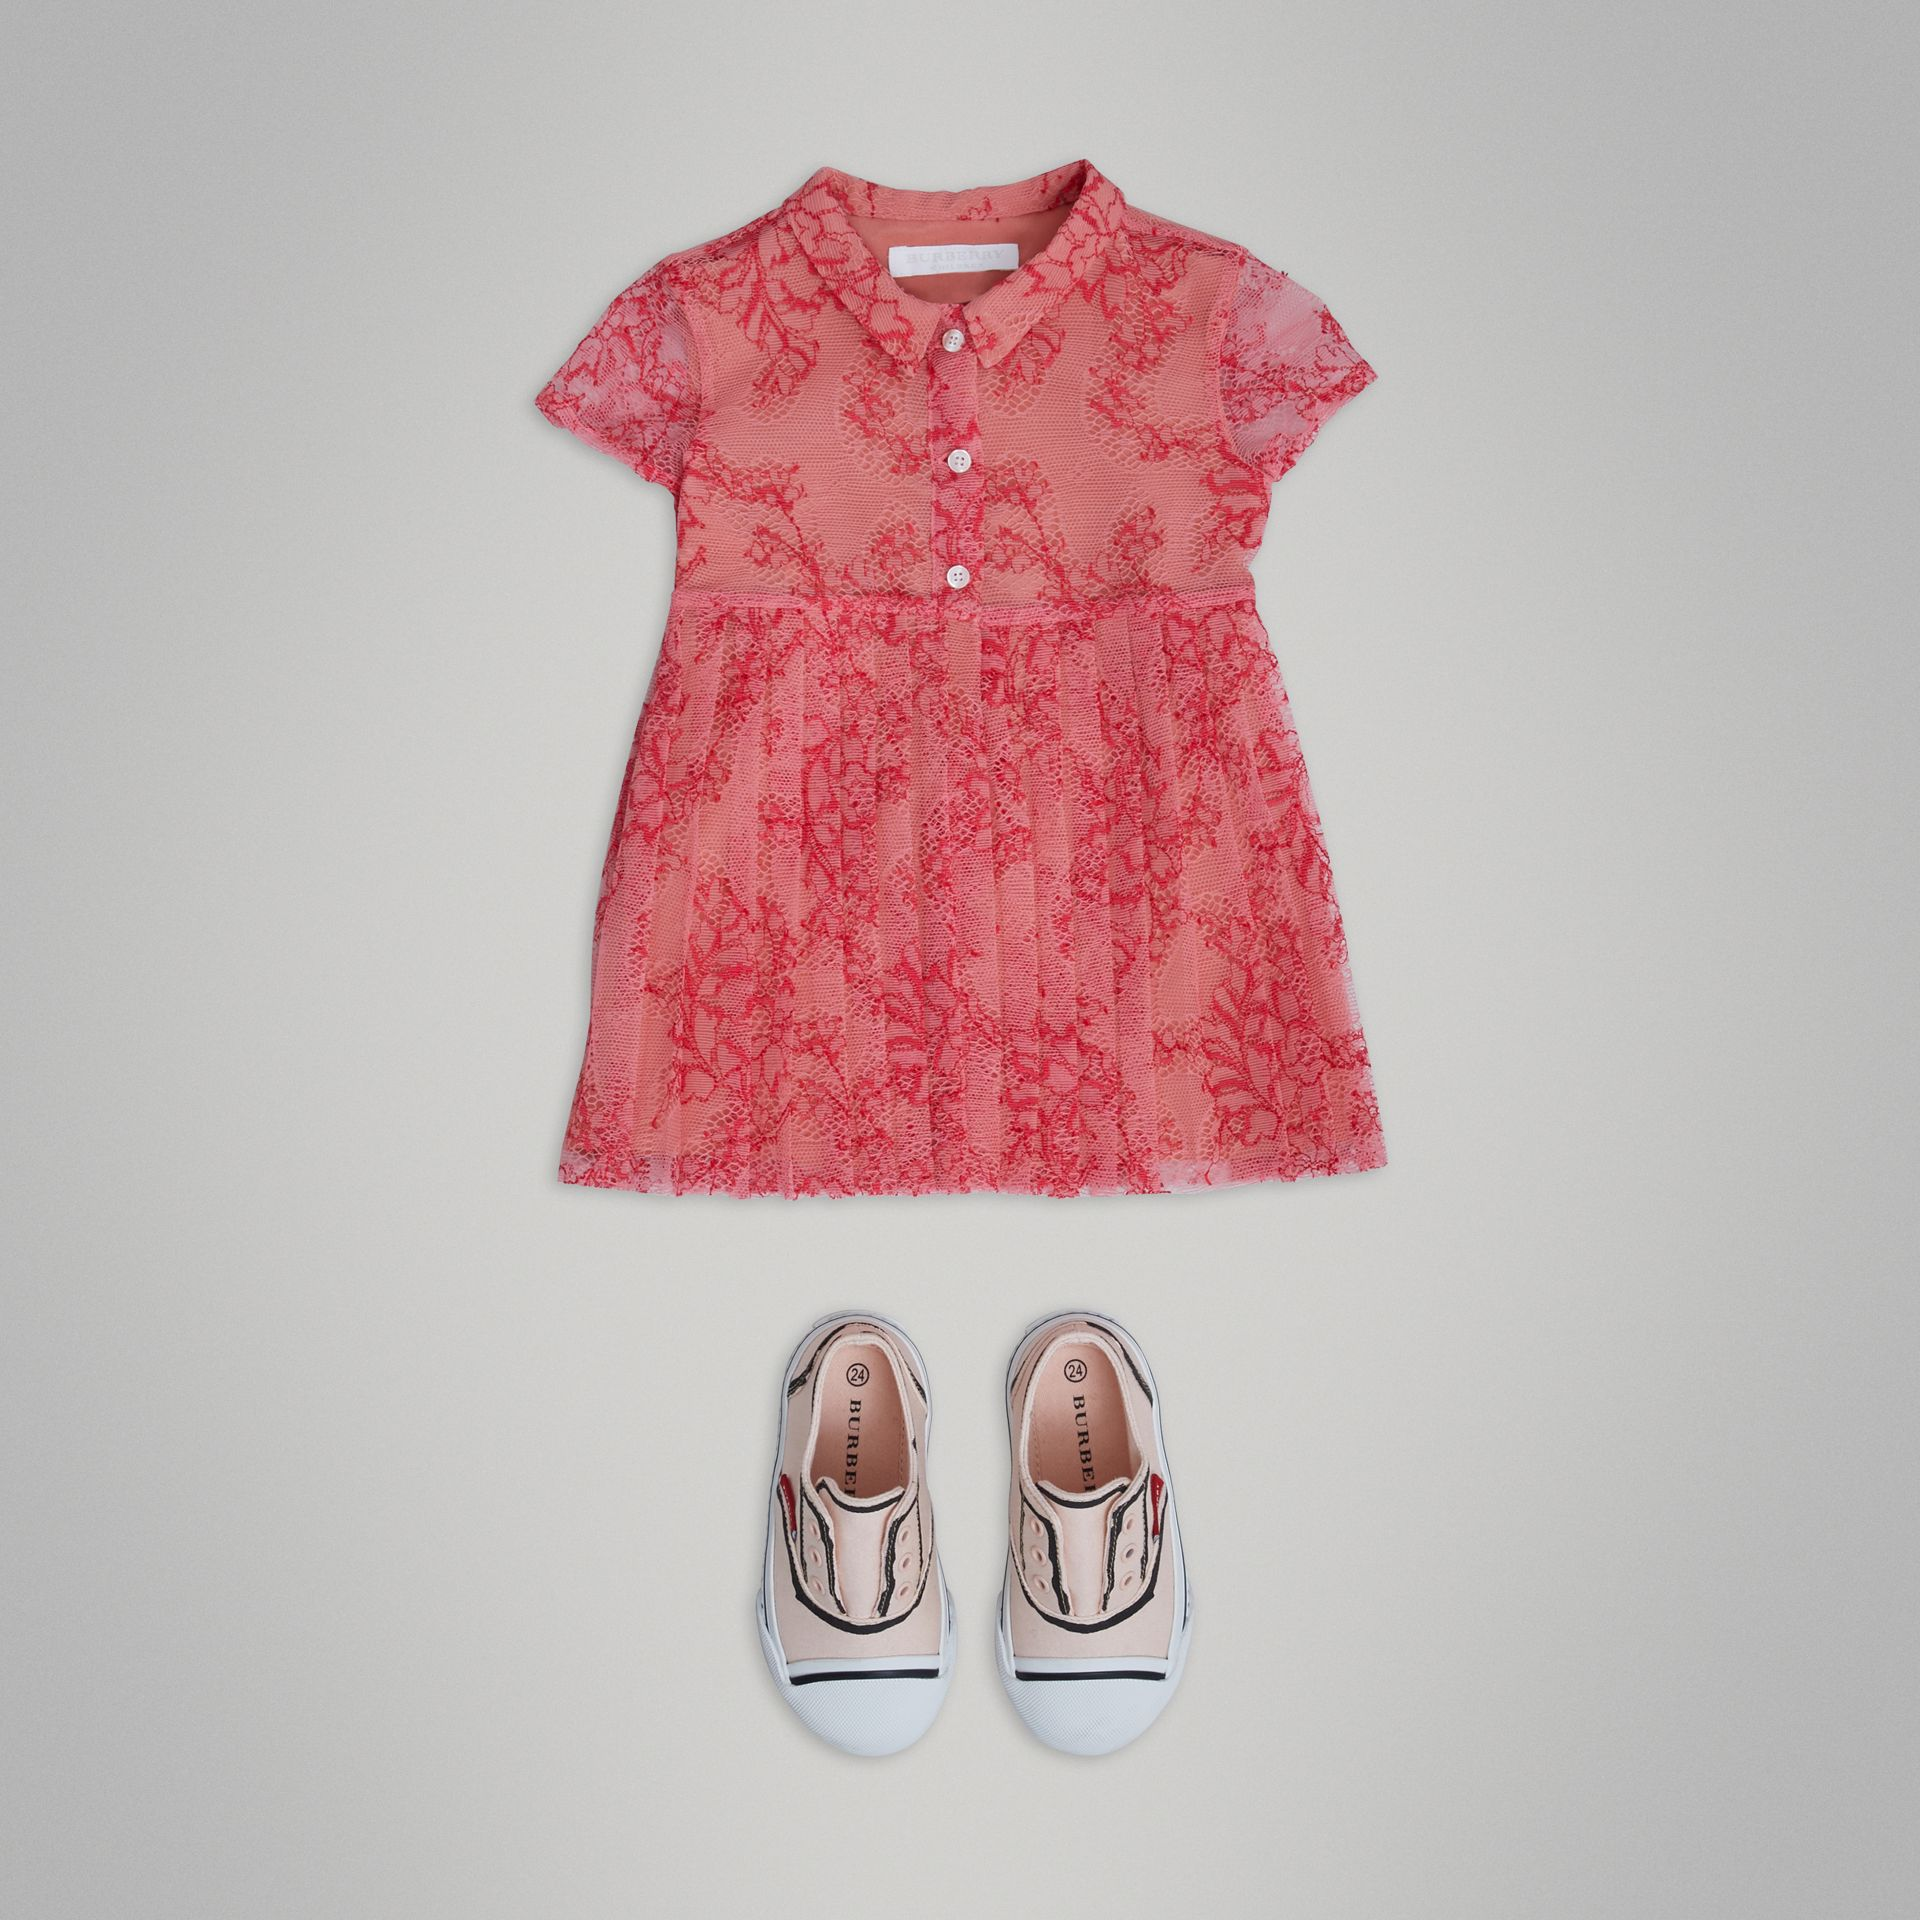 Pleated Lace Dress in Pale Apricot/coral - Children | Burberry - gallery image 2